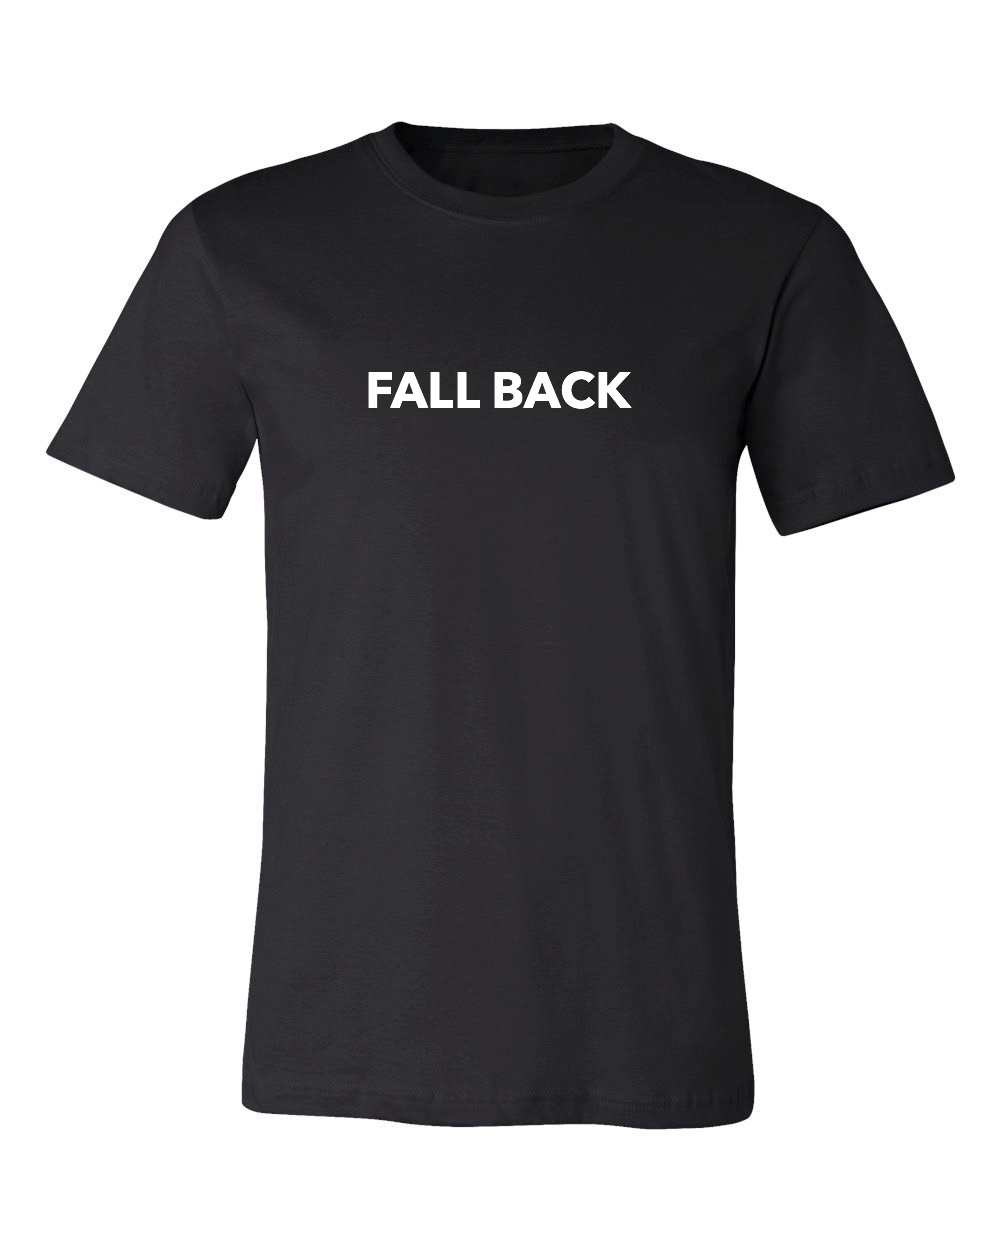 FALL BACK T-SHIRT